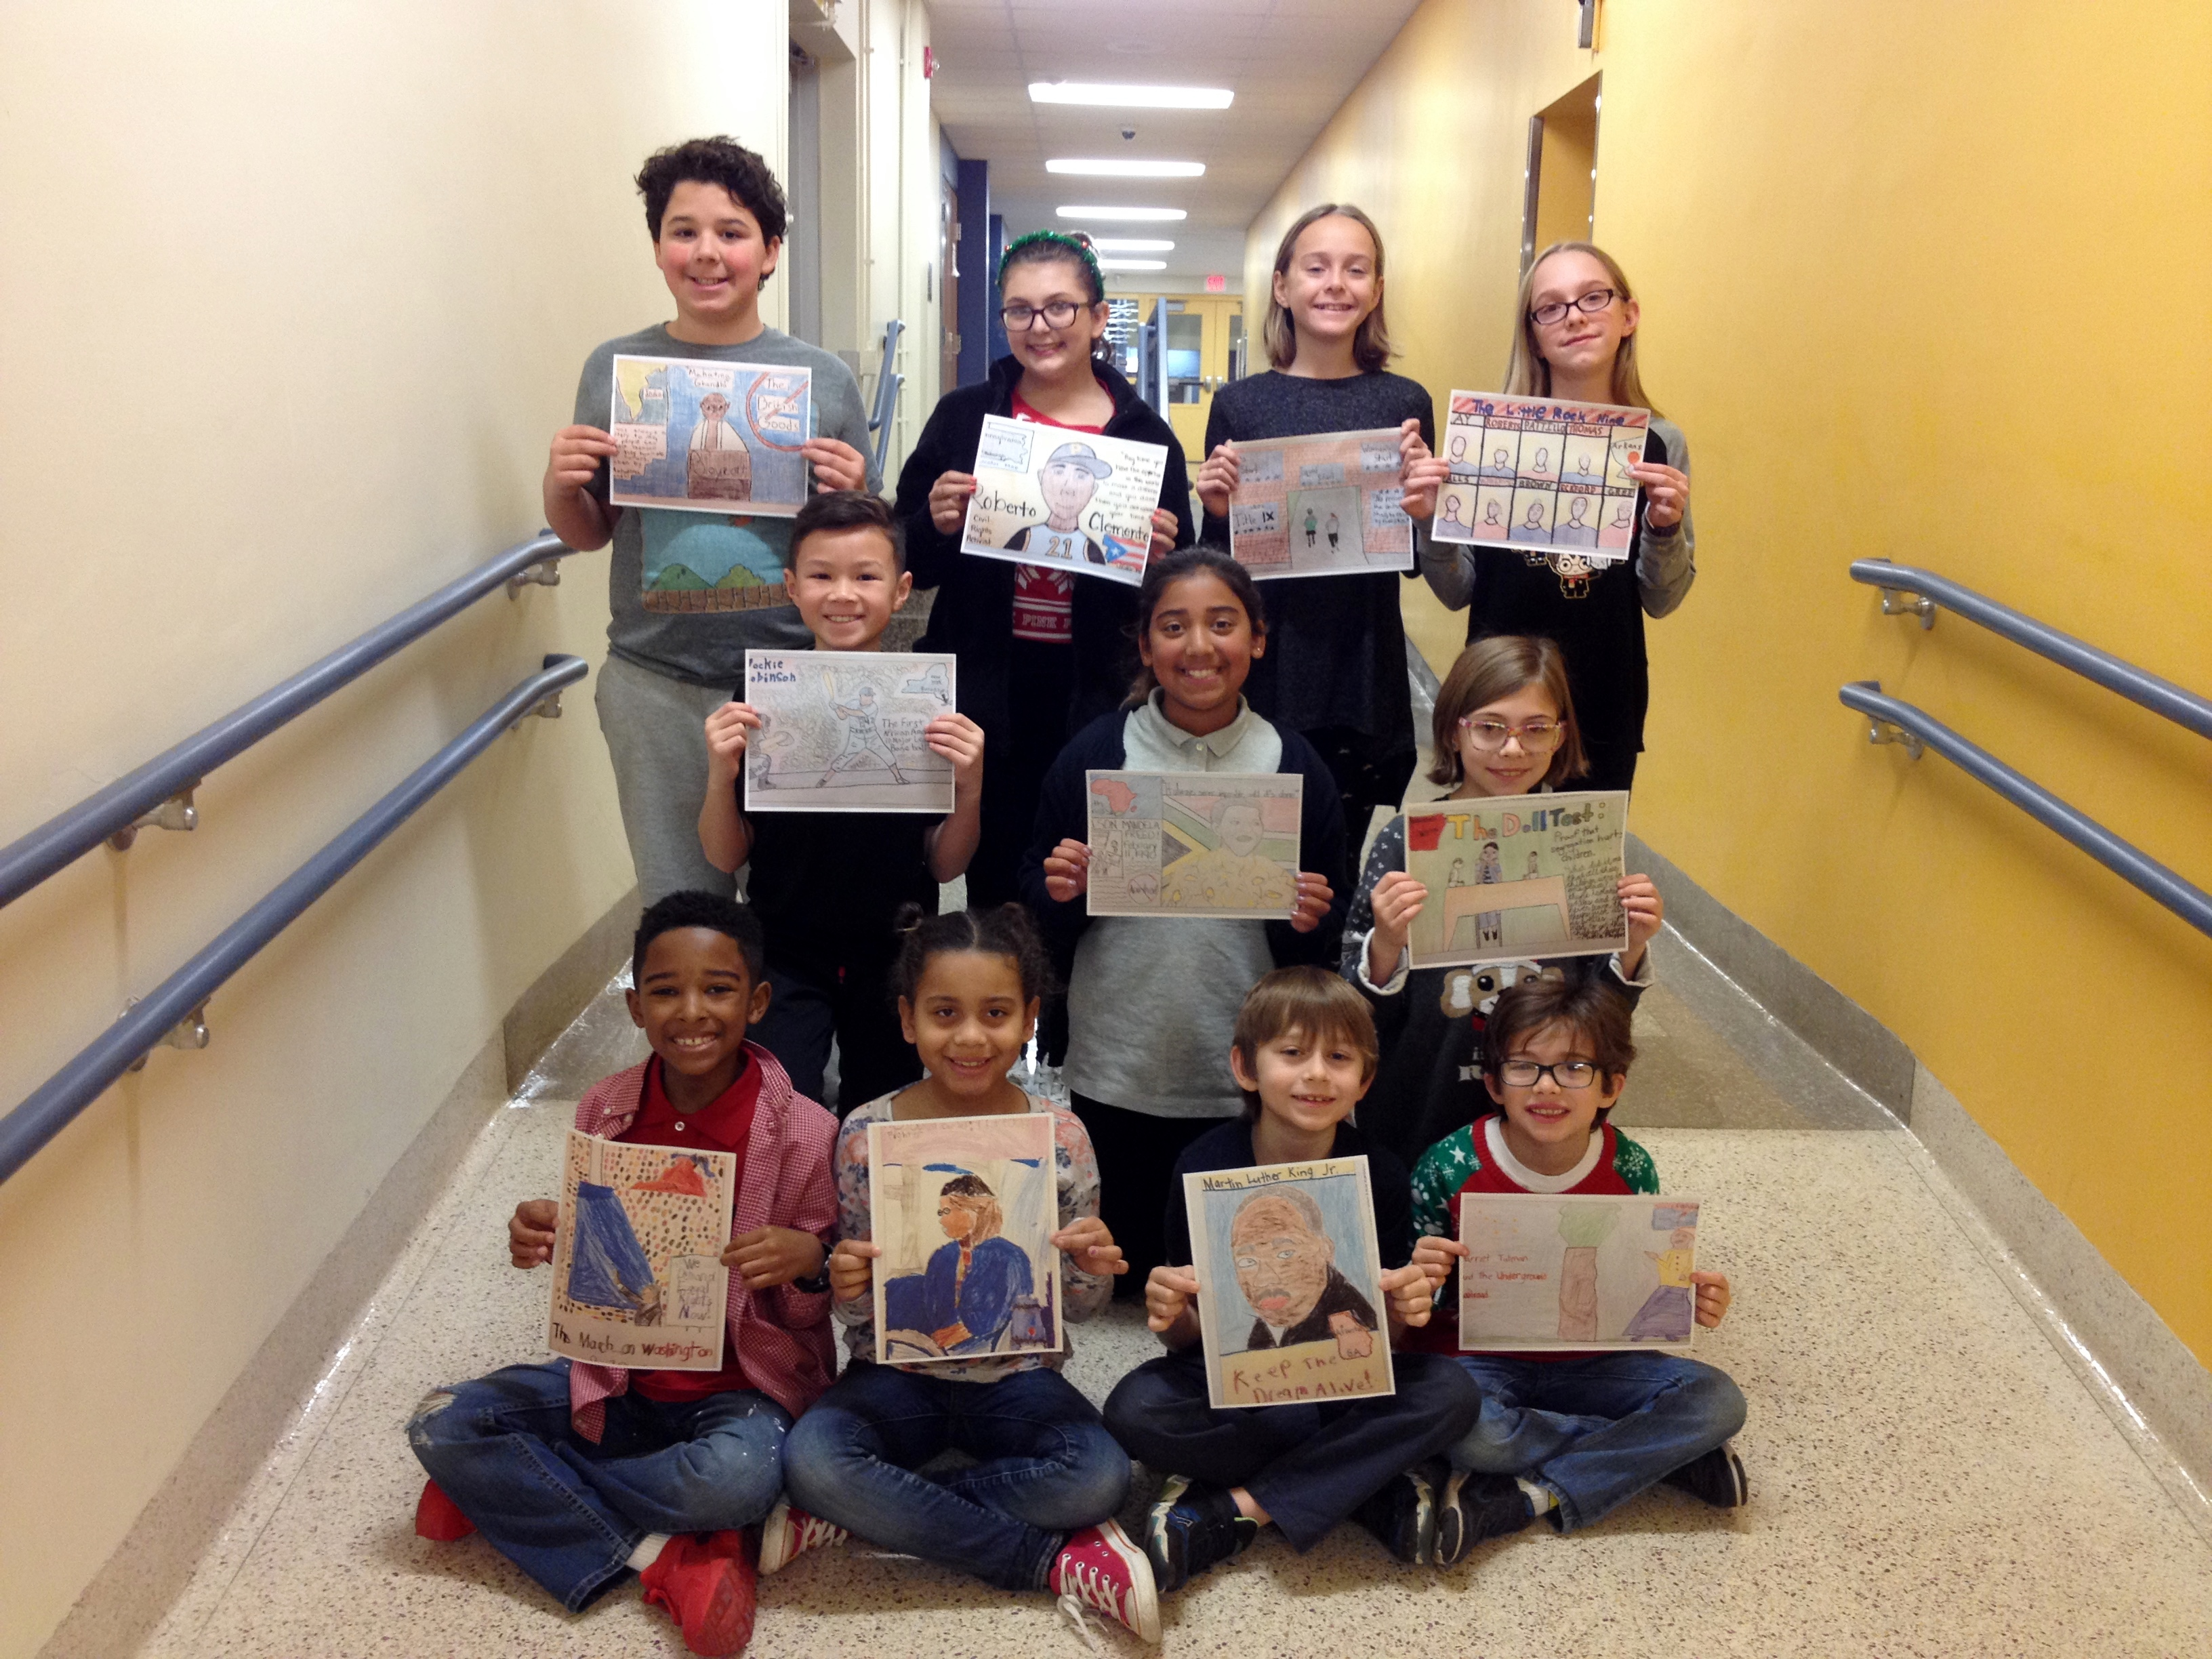 Academy Geography of Civil Rights Movements Postcard Contest Winners